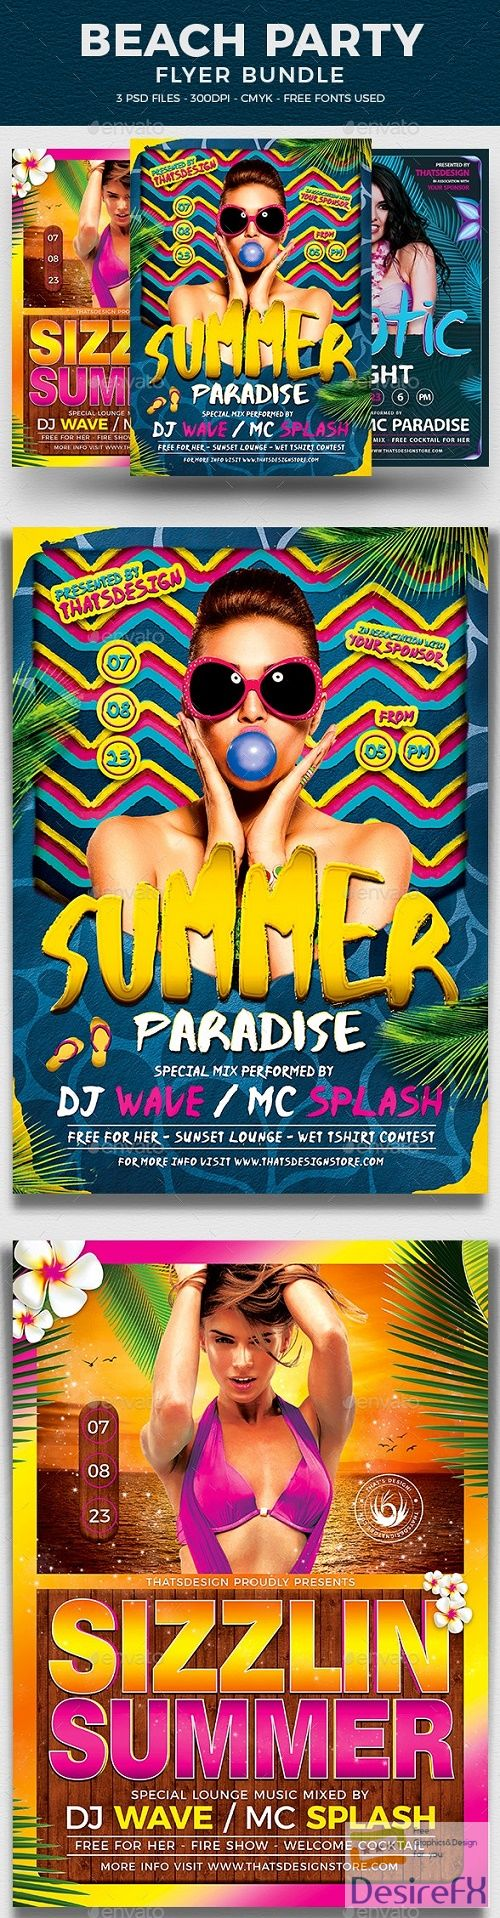 Beach Party Flyer Bundle V3 - 17222202 - 800861